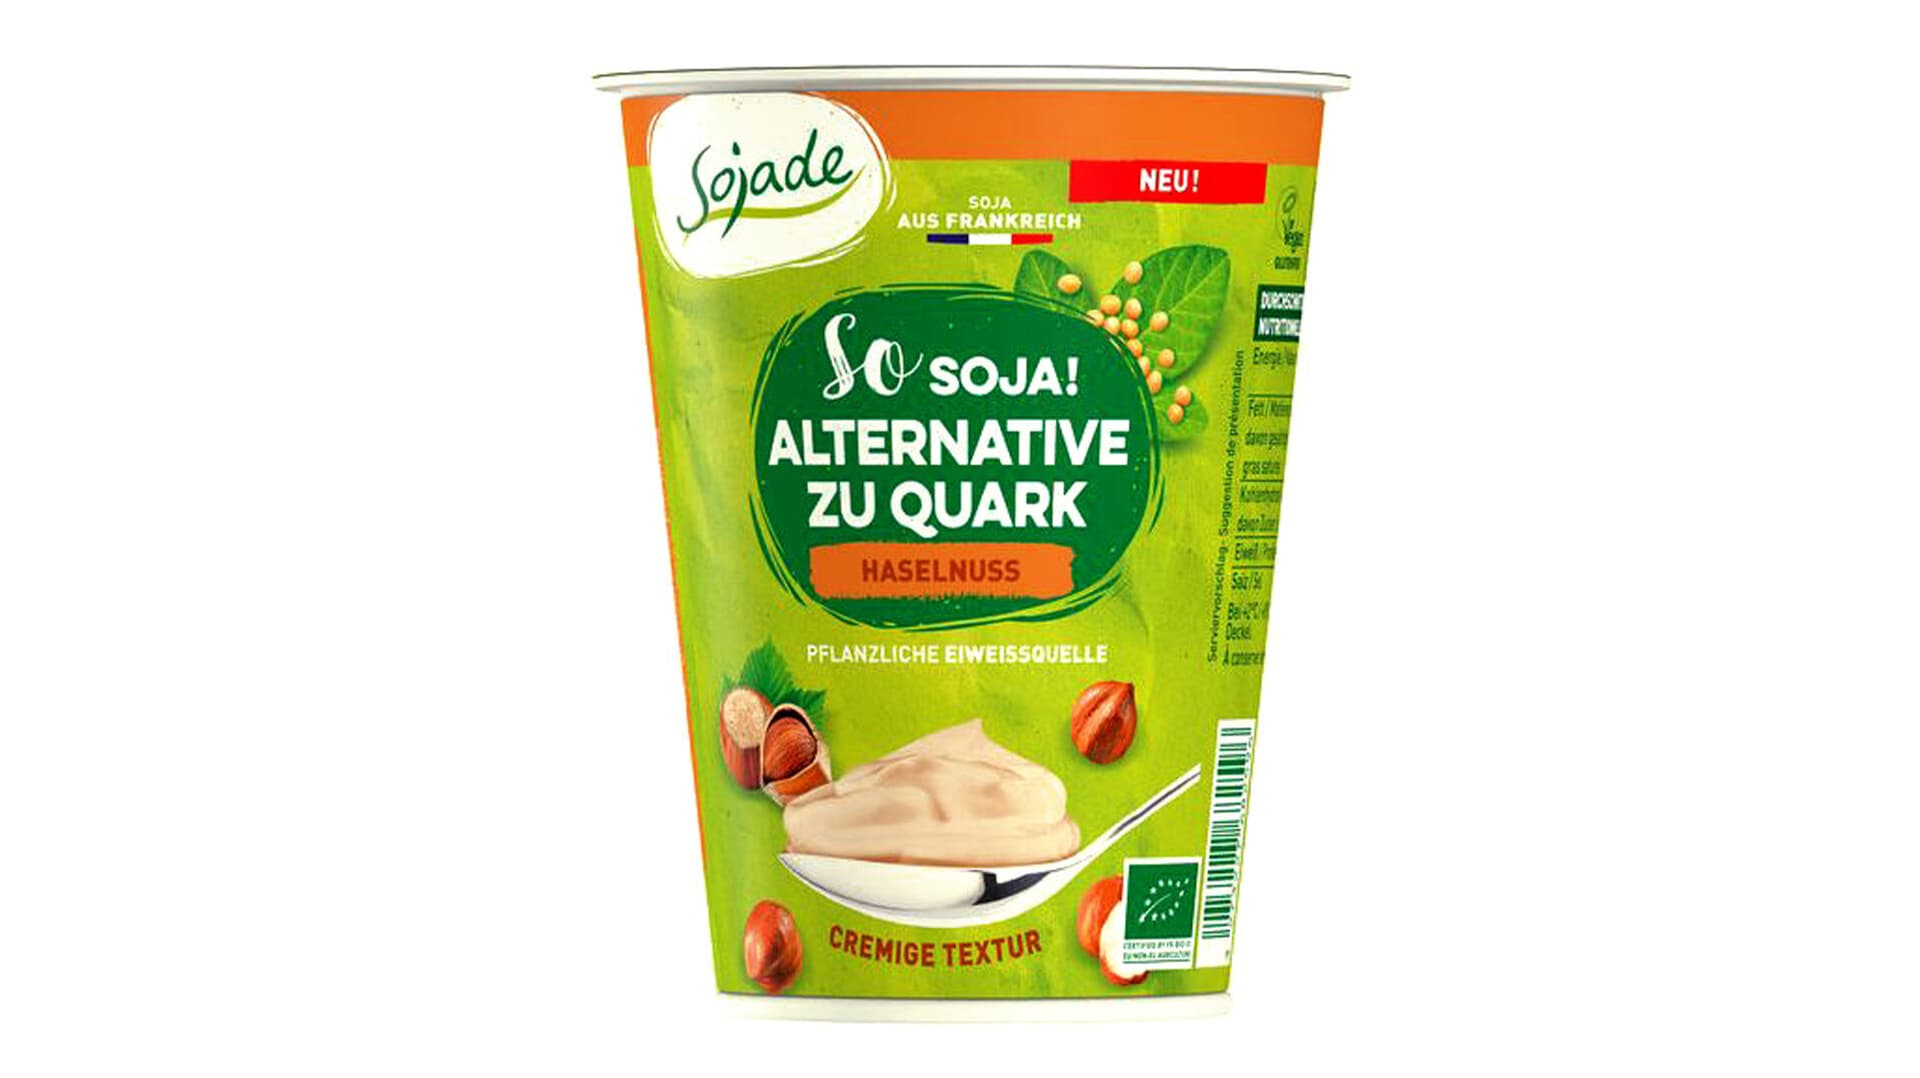 Sojade Haselnuss-Quark-Alternative